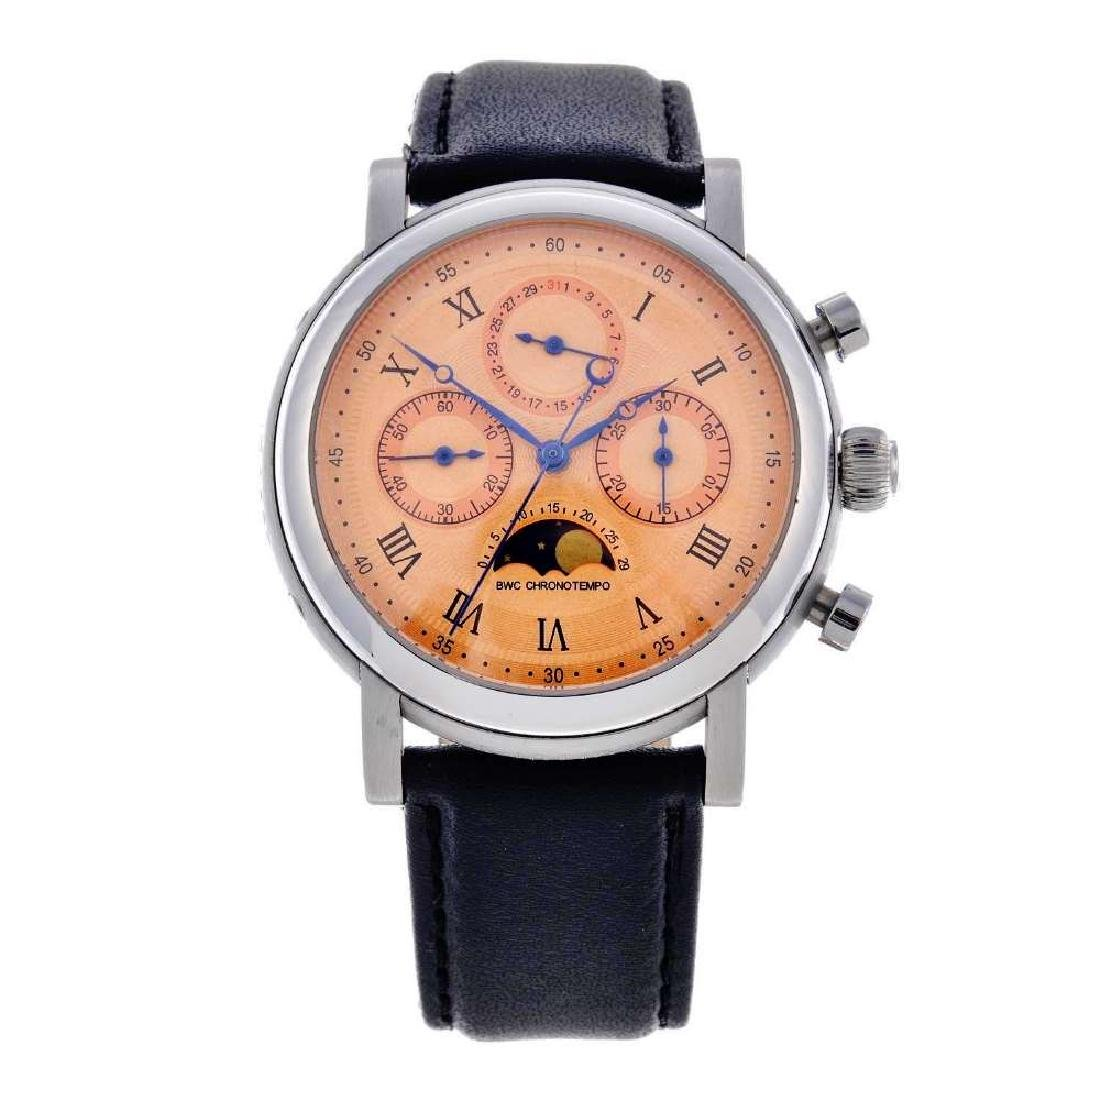 BELGRAVIA WATCH CO. - a ltd edition #4/500 Power